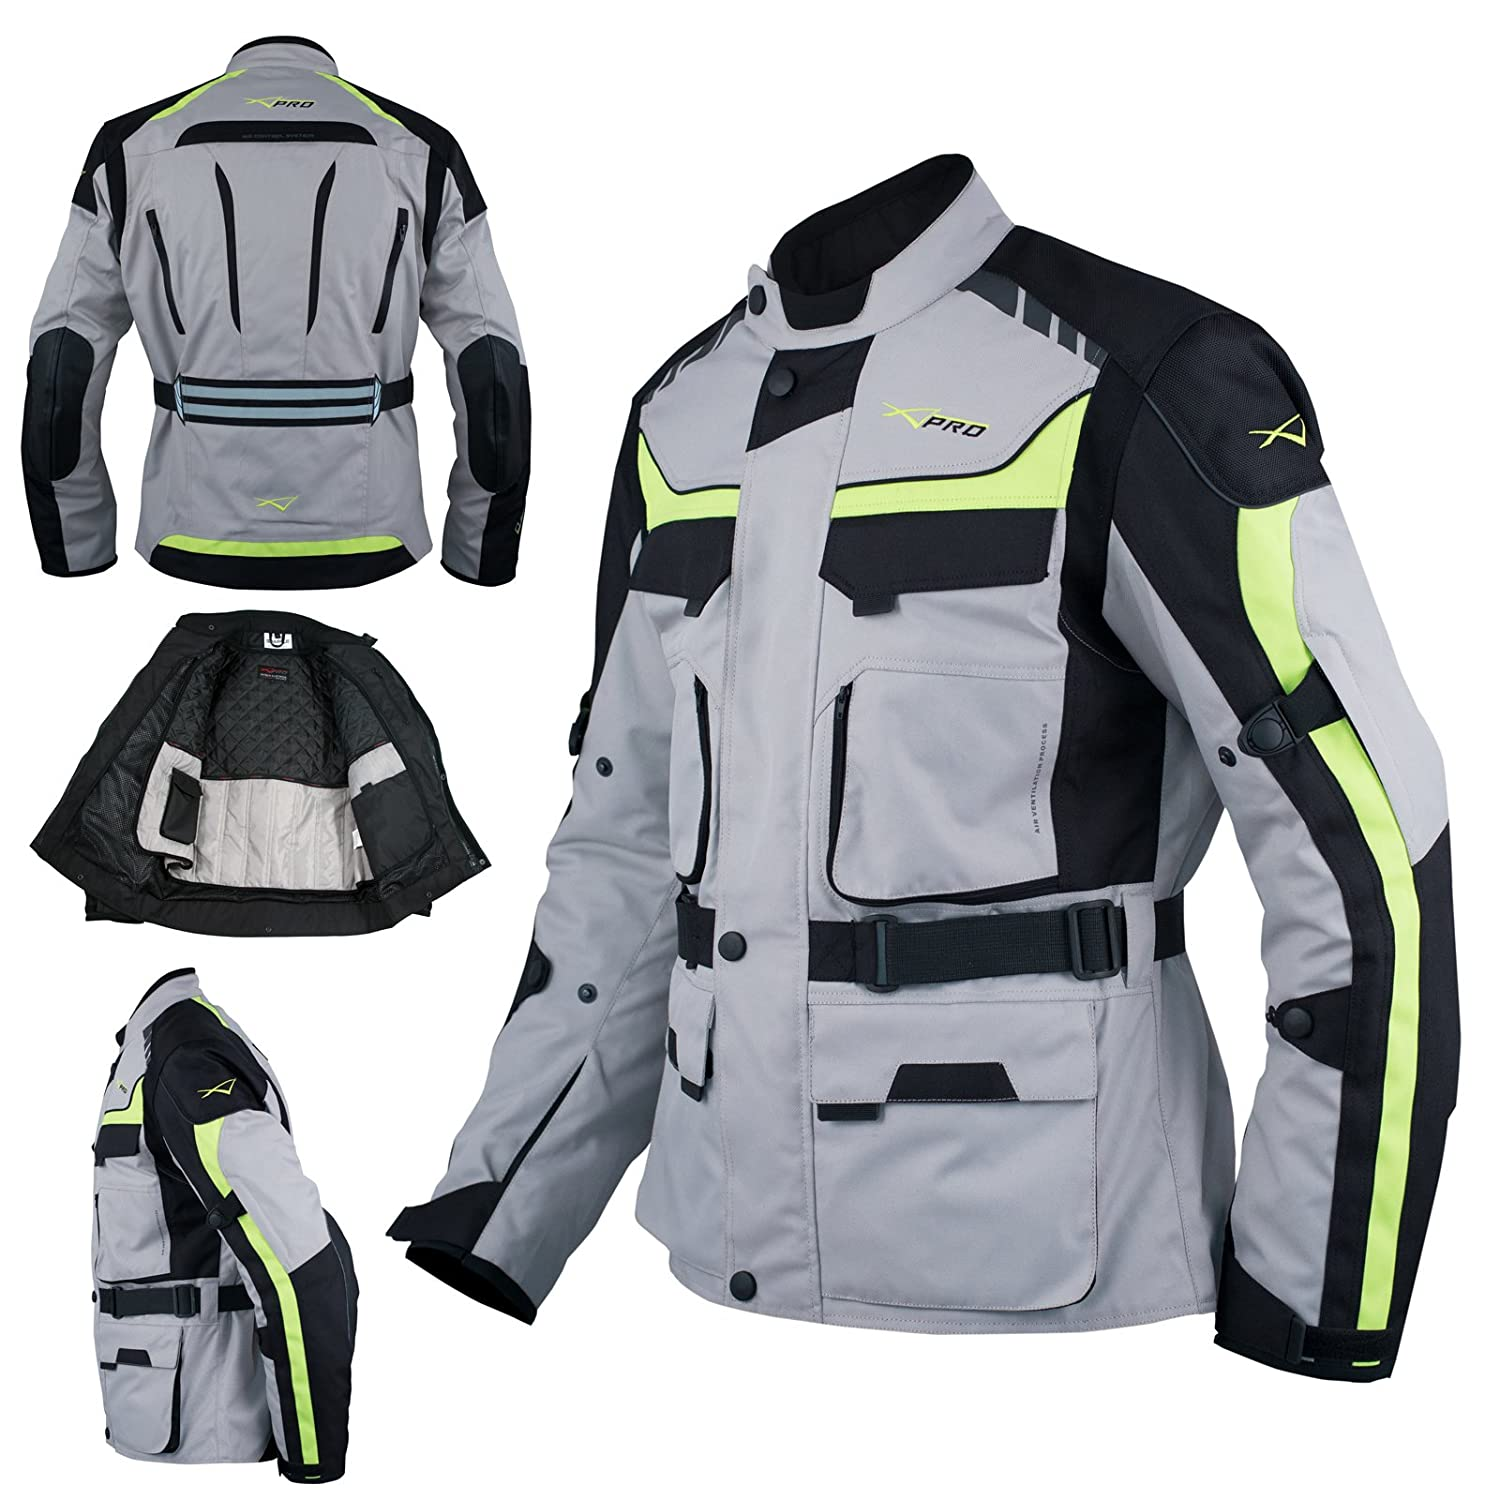 A-Pro Giacca Moto Scooter Tessile Gilet termico impermeabile Touring Nero L 5180000076788